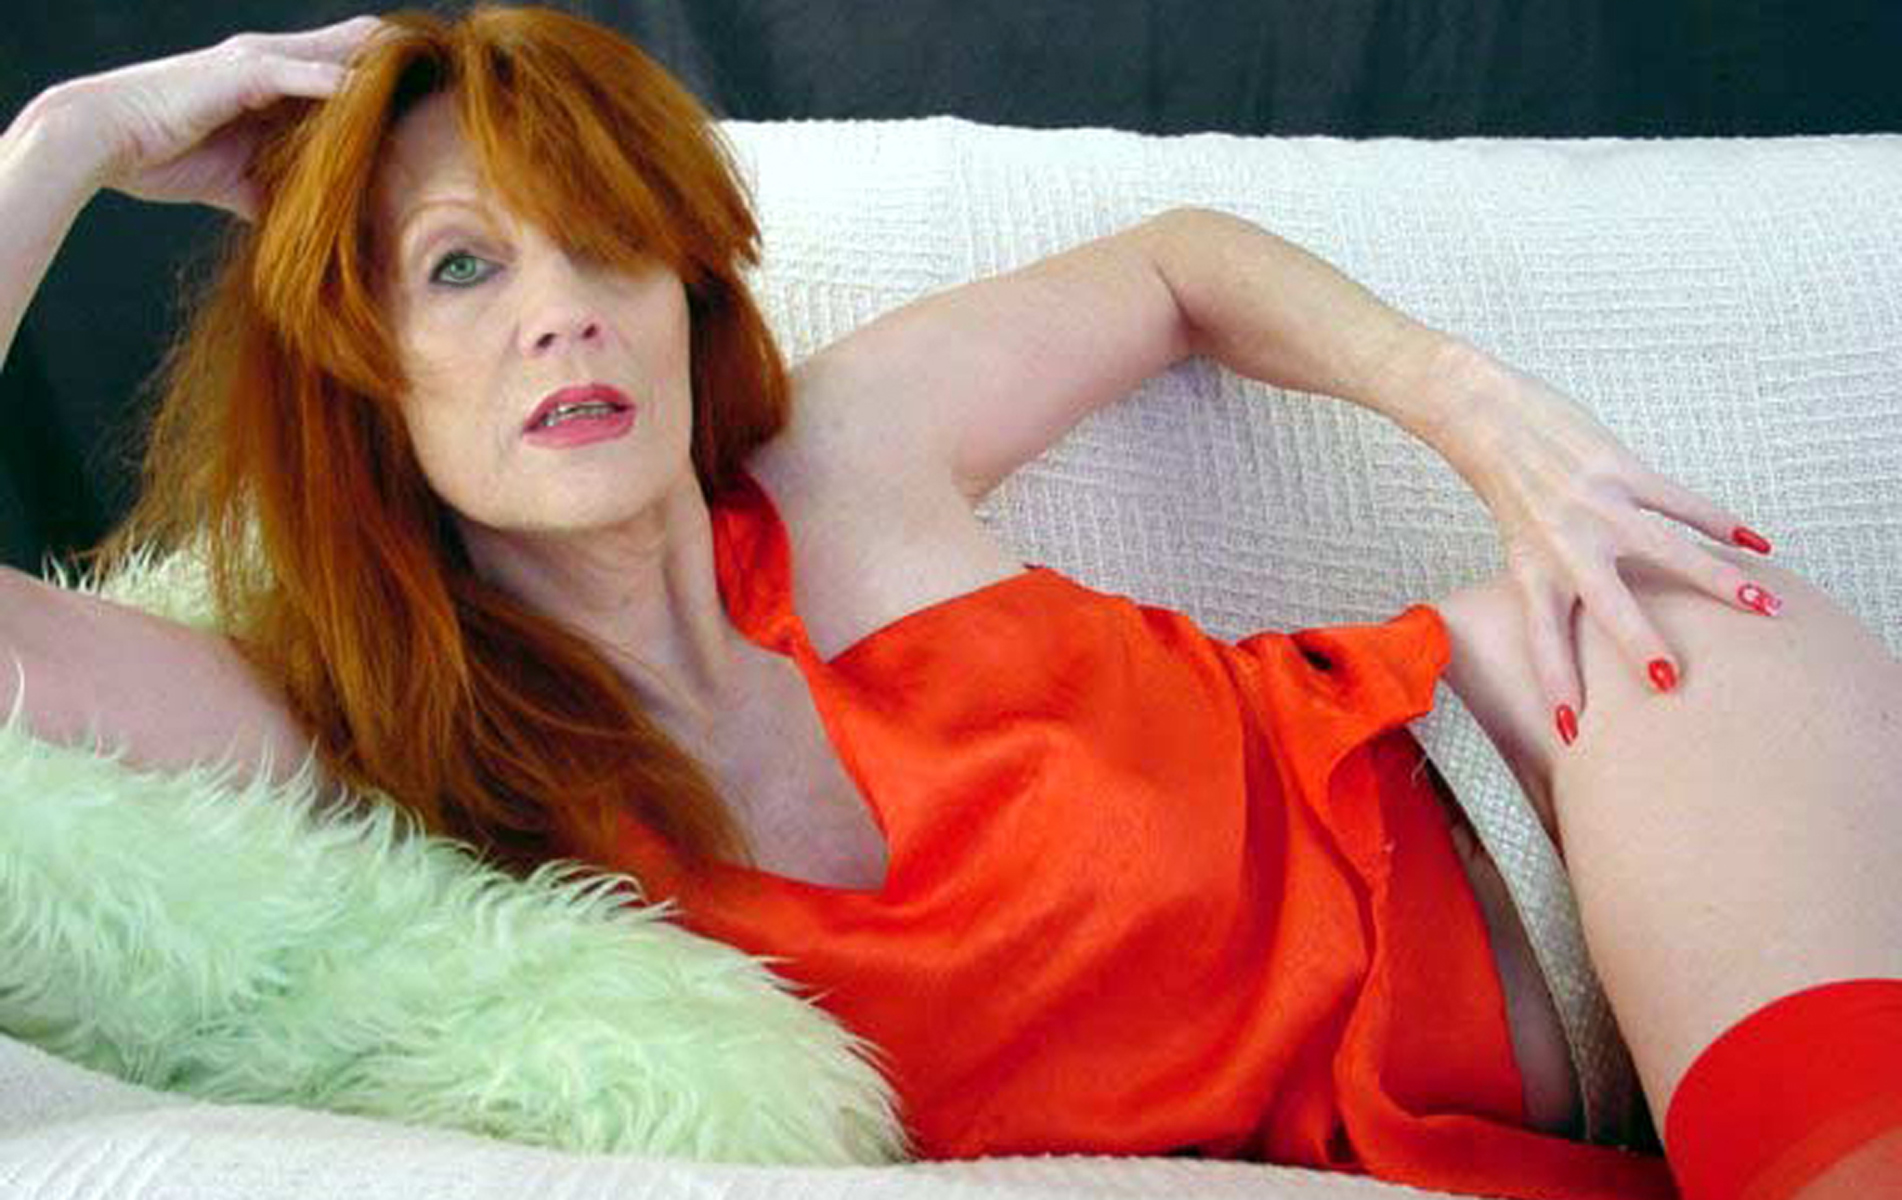 Mature red head - free downloads